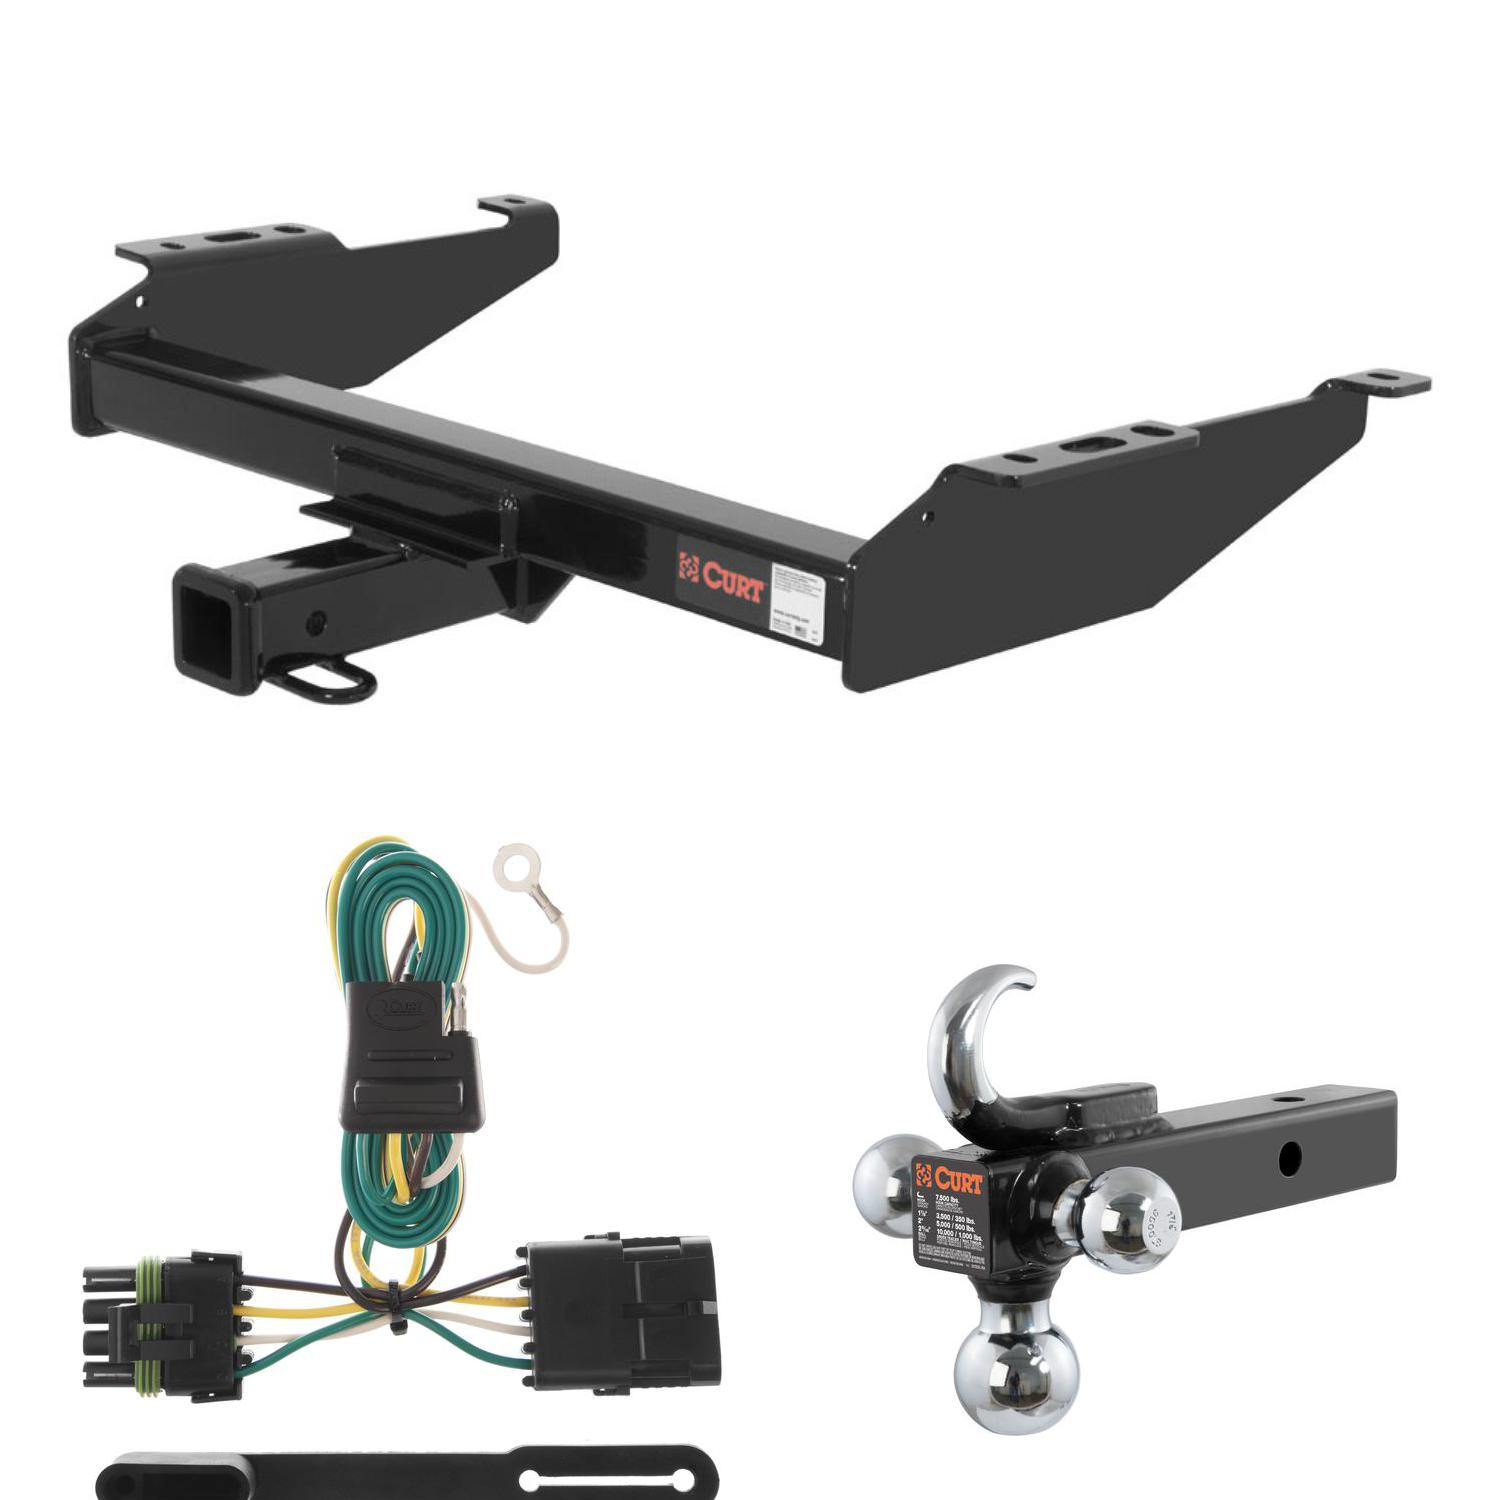 CUR 14081 55315 45675 curt trailer hitch, wiring & w tow hook ball mount for chevy curt trailer hitch wiring at n-0.co